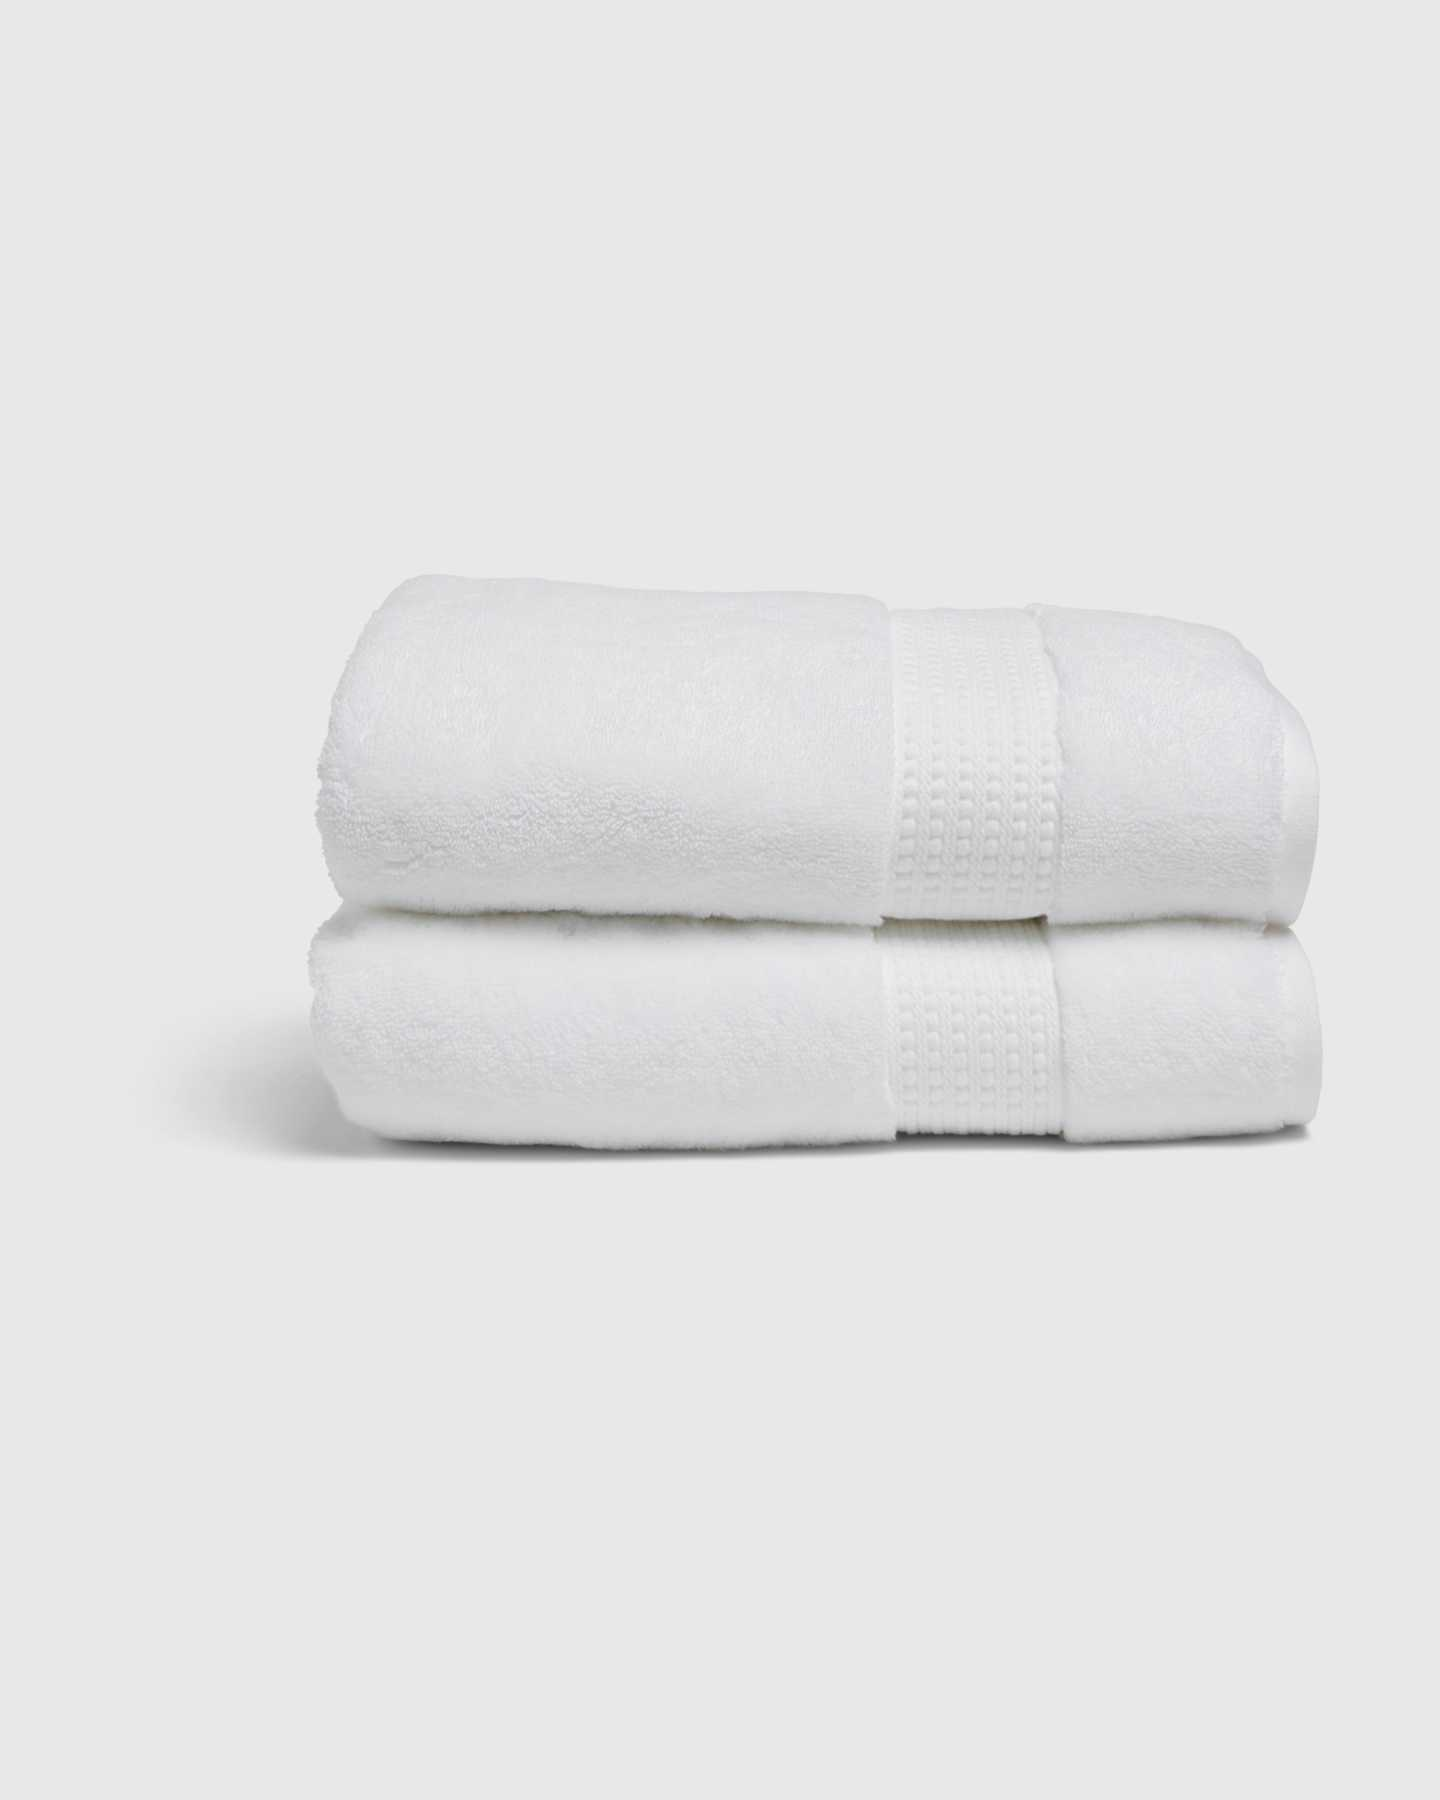 Turkish Quick-Dry Bath Towels (Set of 2) - White - 0